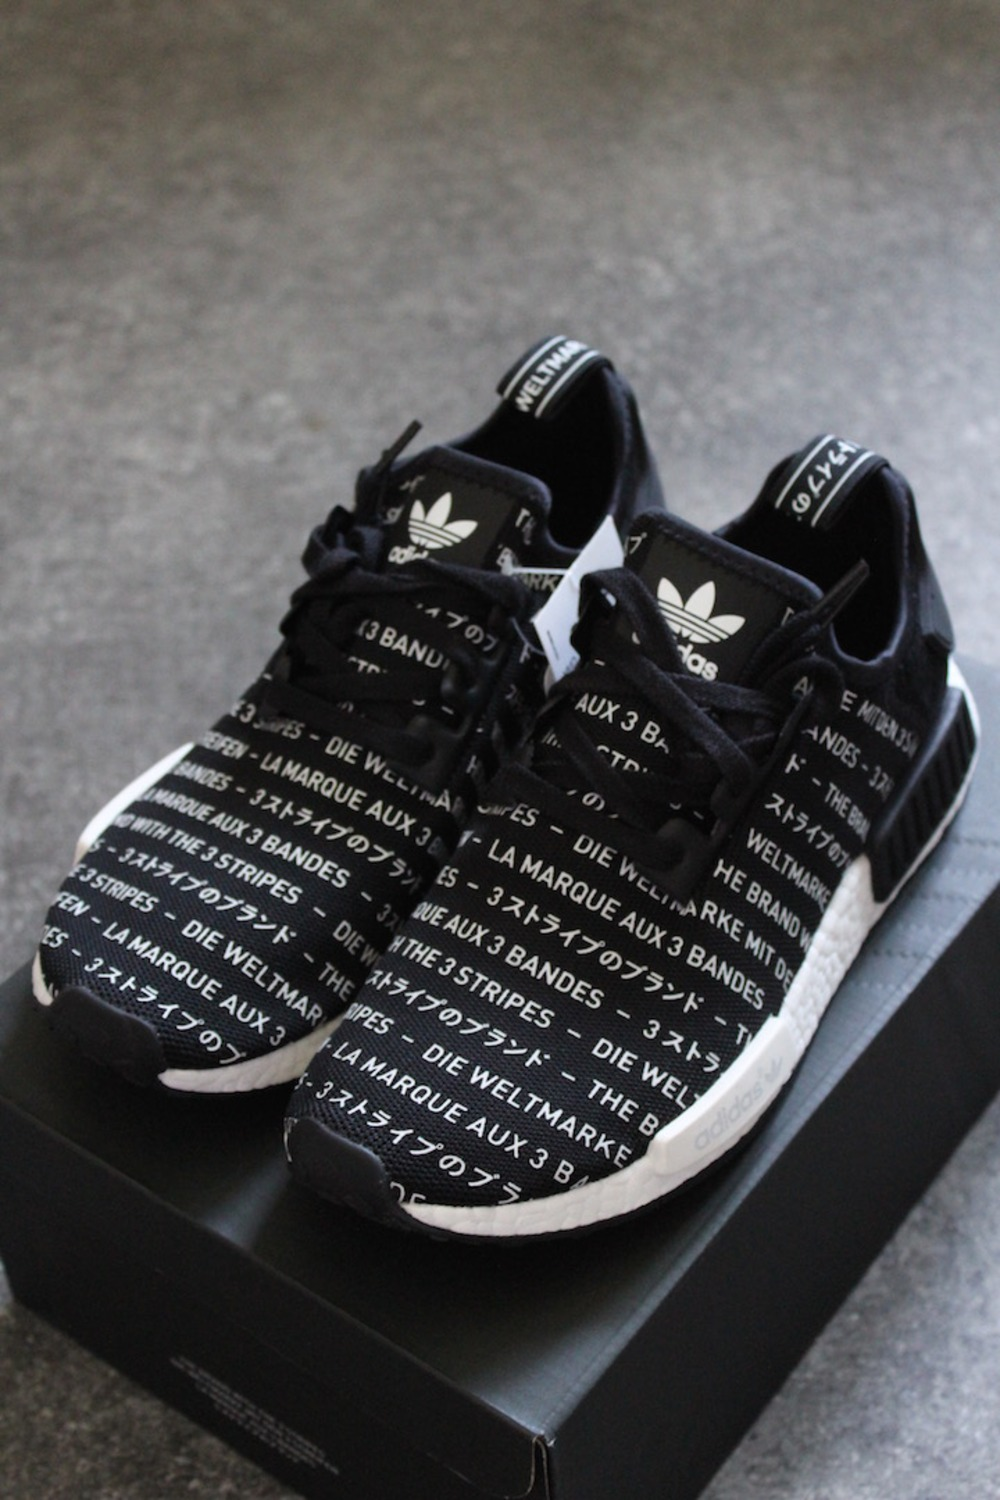 hot sale online caeb0 0a061 Cheap Adidas NMD R1 Primeknit Shoes Sale, Buy NMD R1 Boost Online